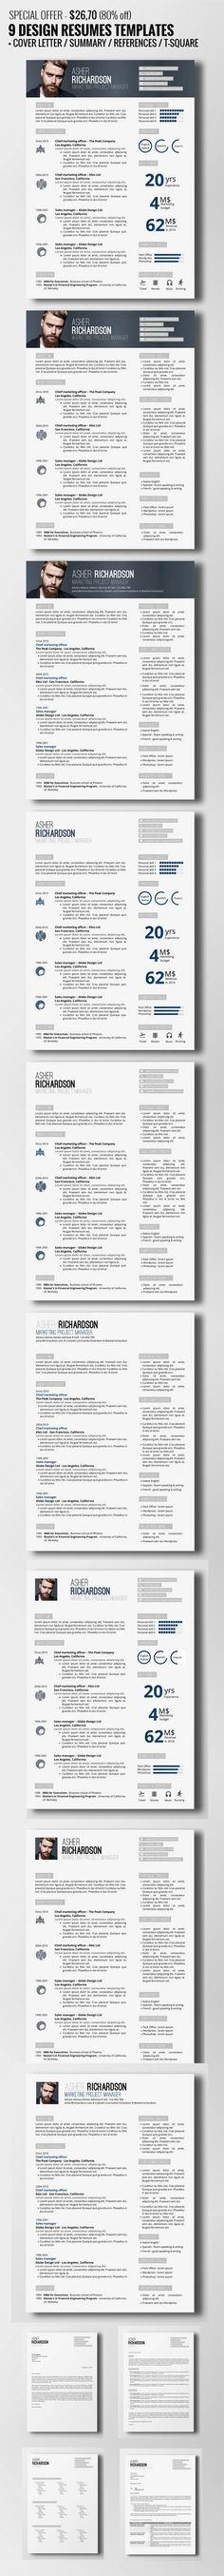 435 best Resume images on Pinterest Resume design, Design resume - free resume builder app